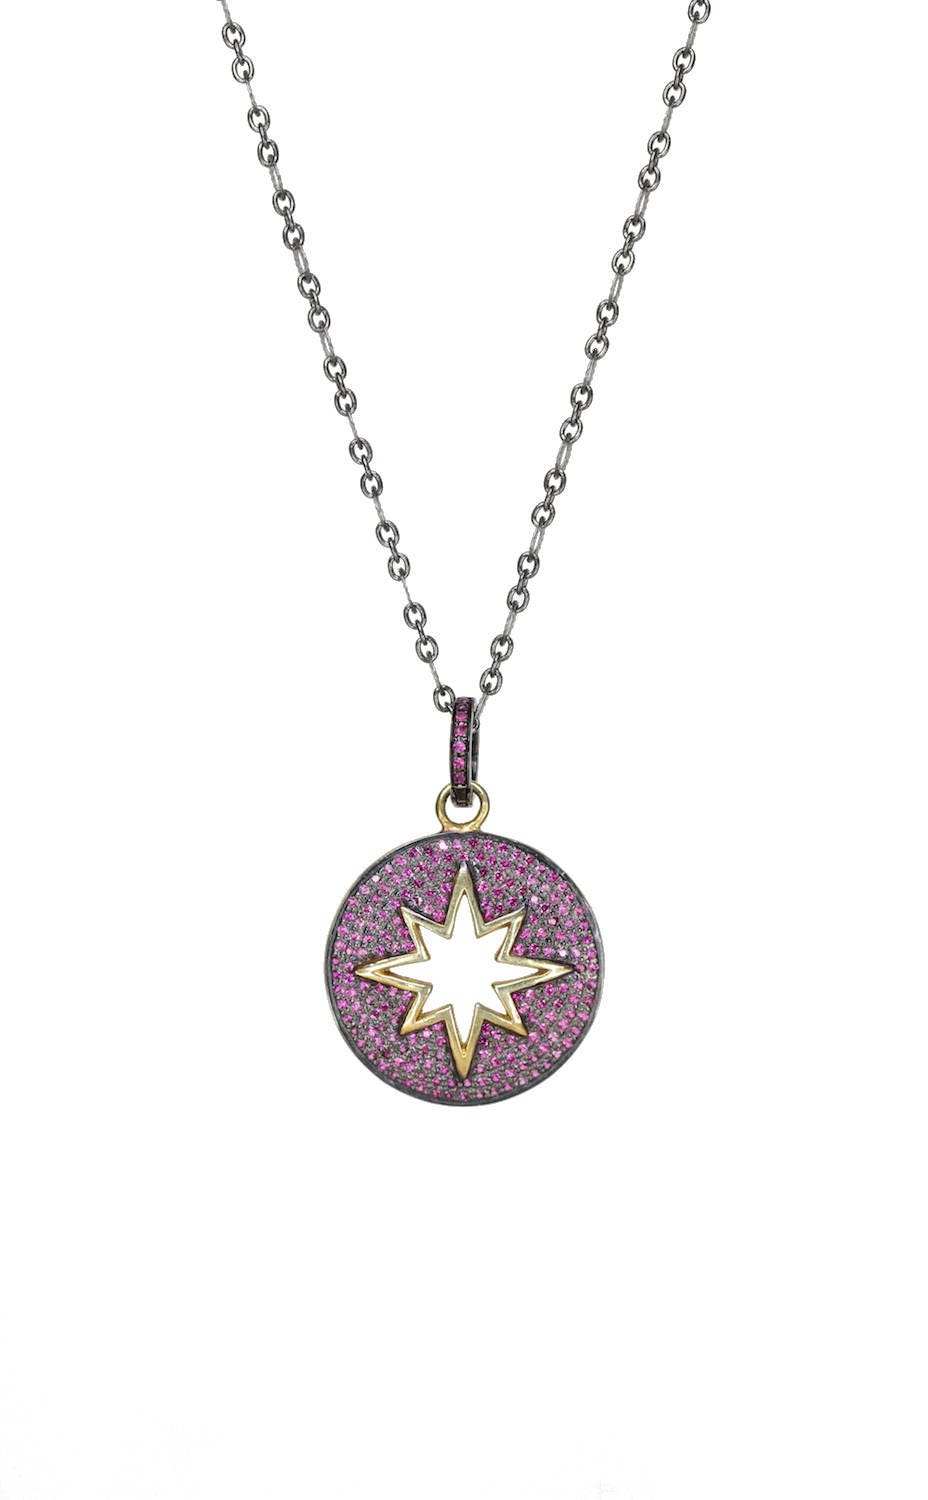 Pave ruby star medallion necklace genuine ruby star pendant oxidized pave ruby star medallion necklace genuine ruby star pendant oxidized sterling silver detachable pendant adjustable length mixed metals mozeypictures Gallery